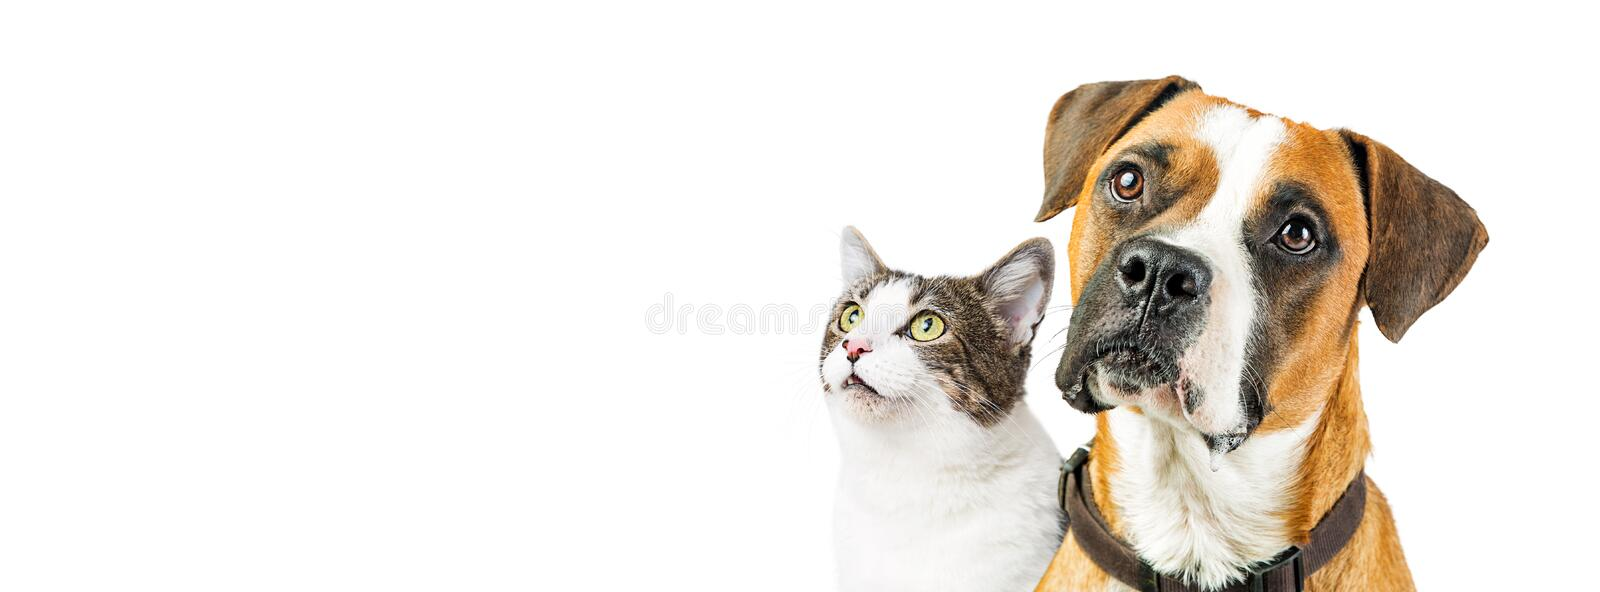 Dog and Cat Together on White Horizontal Banner royalty free stock photography